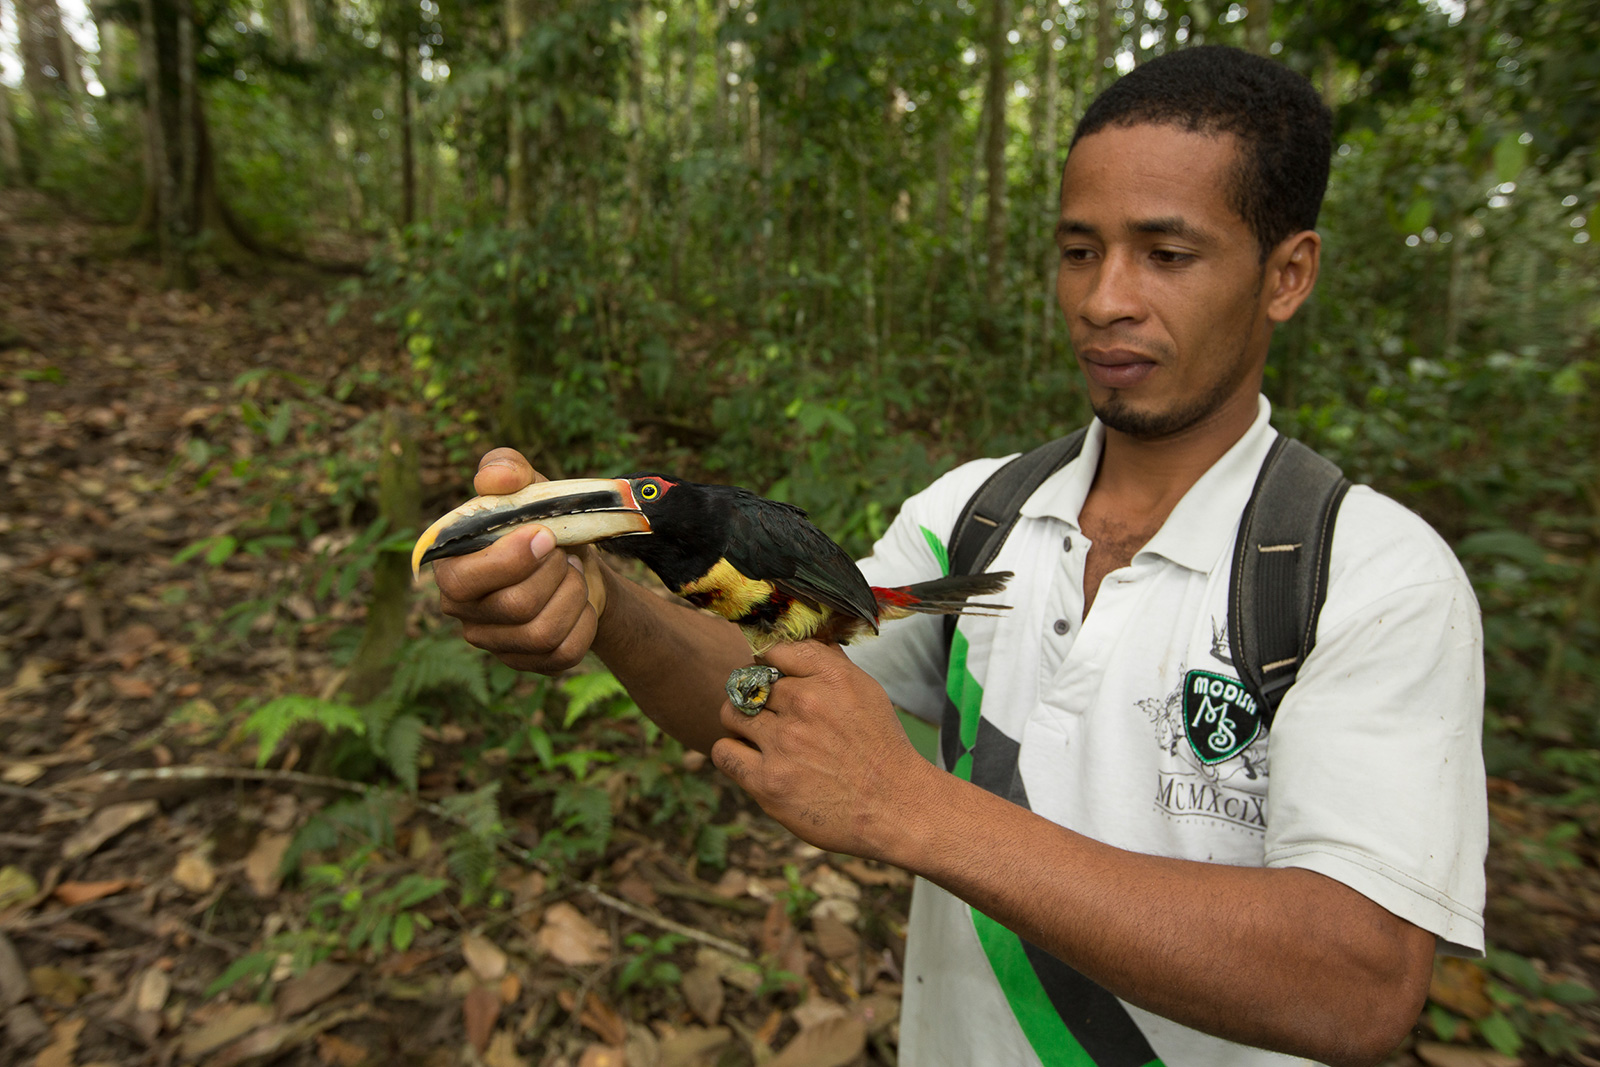 A researcher carefully examines a bird in the forest